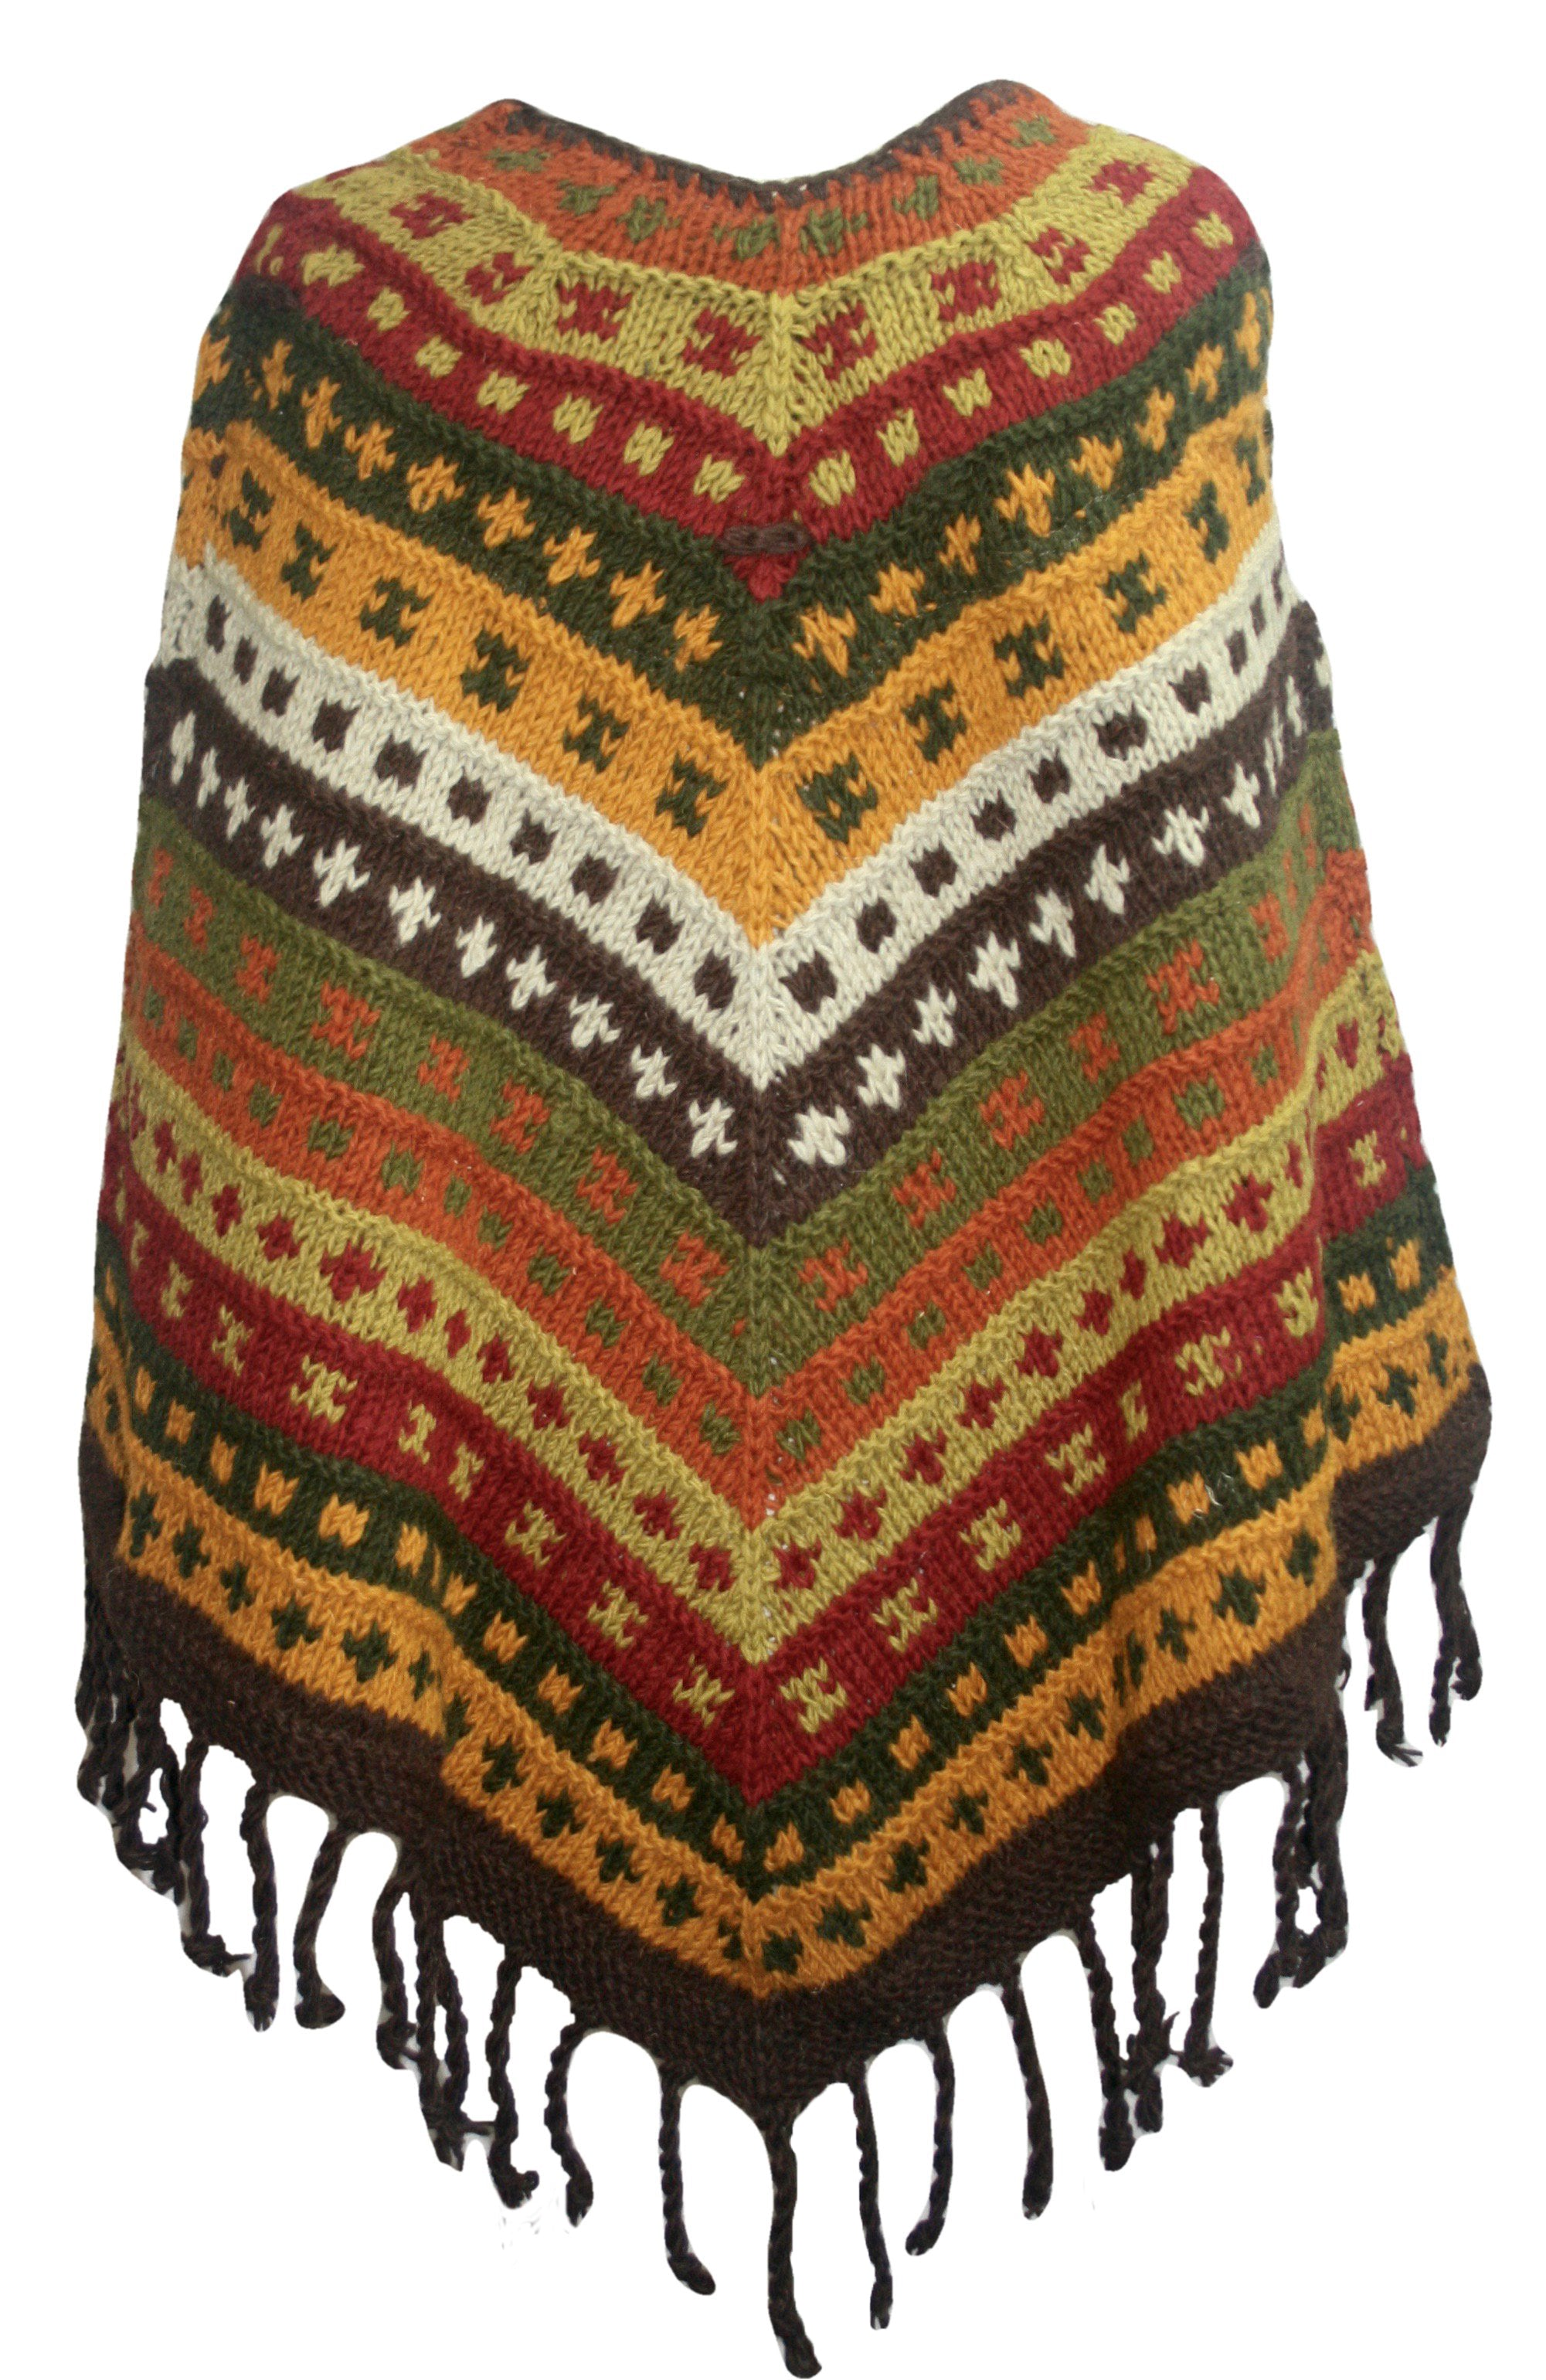 PN 200 Himalayan Thick Sheep Wool Hand Knitted Poncho - Agan Traders, PN 200 19